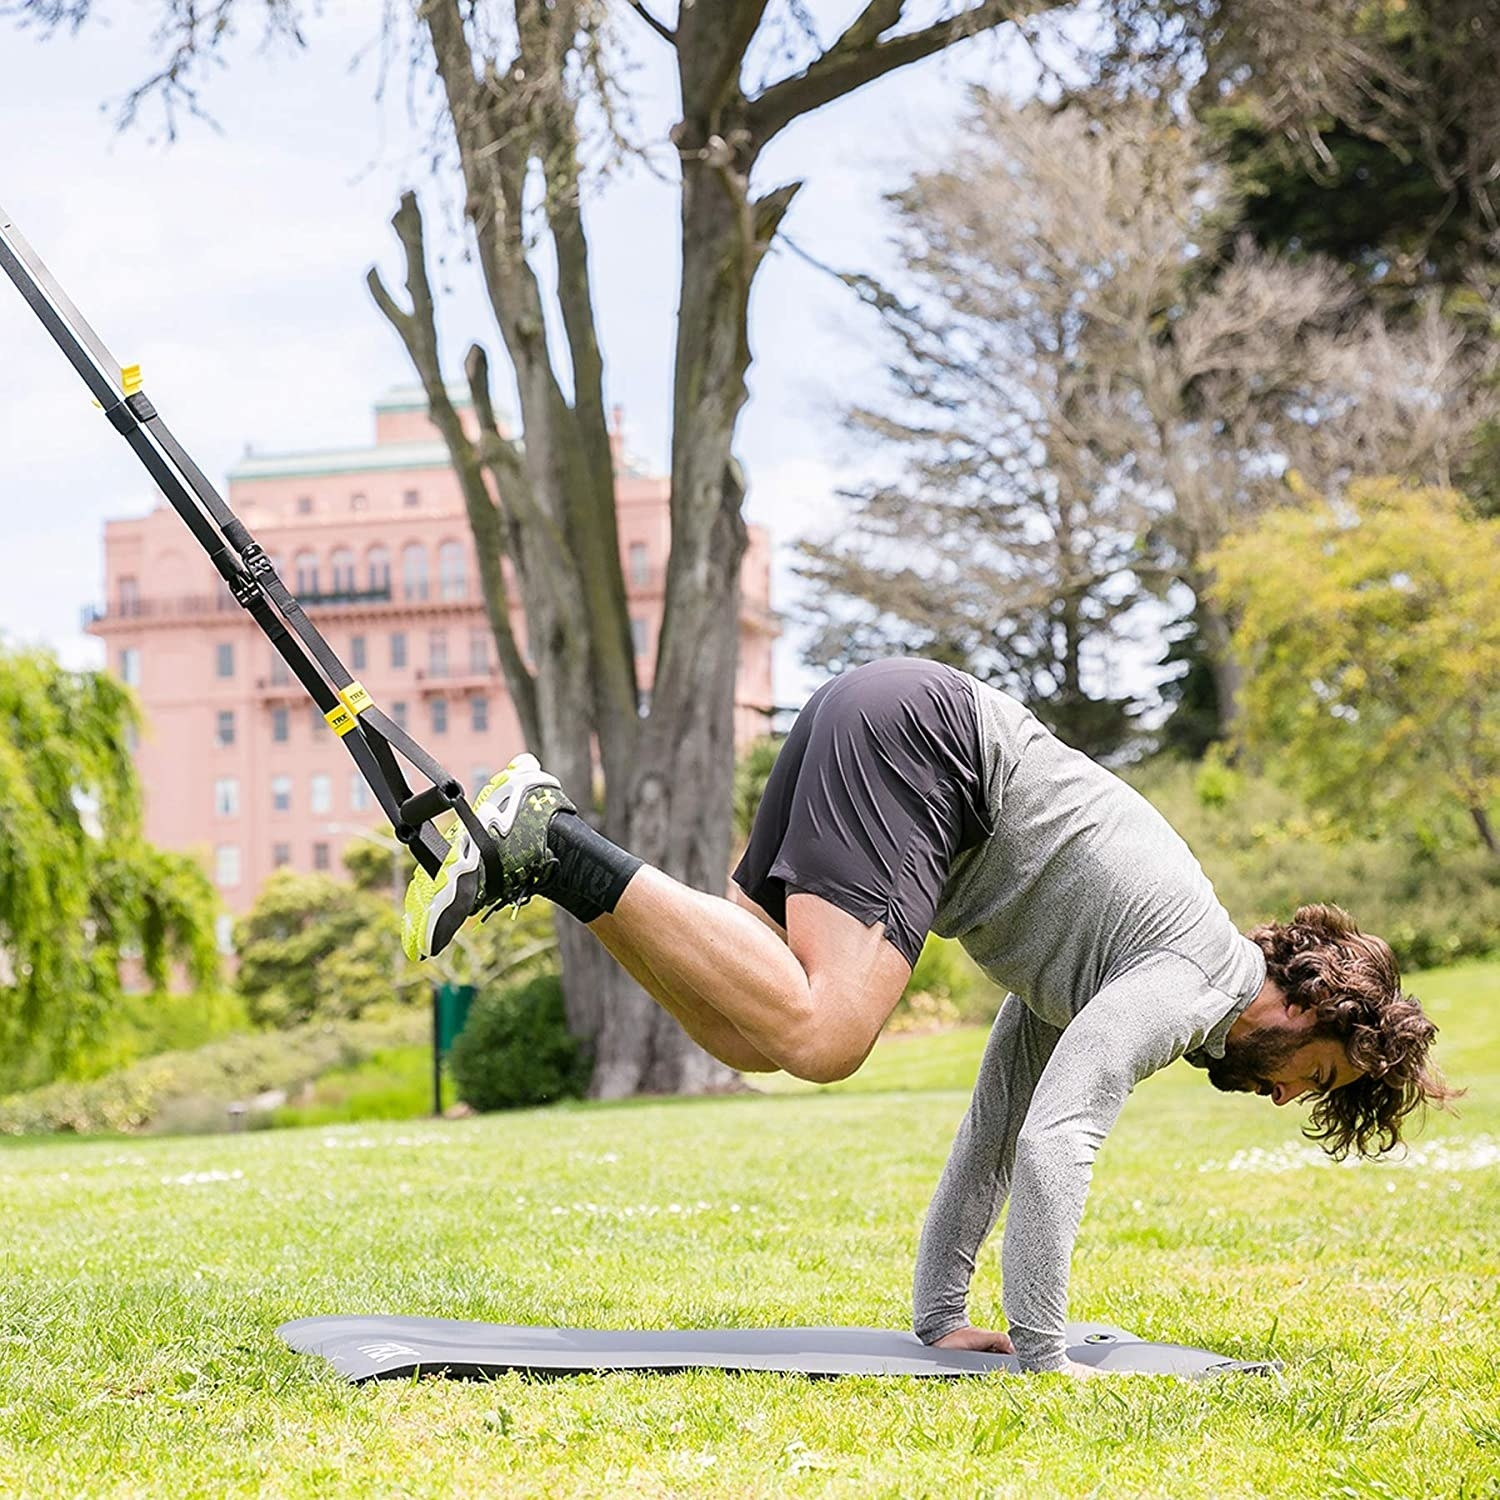 A model with their feet around the elevated TRX straps and their arms on a yoga mat. The straps are attached to a tree and they are lifting their bodyweight with their arms while pulling down with their legs.